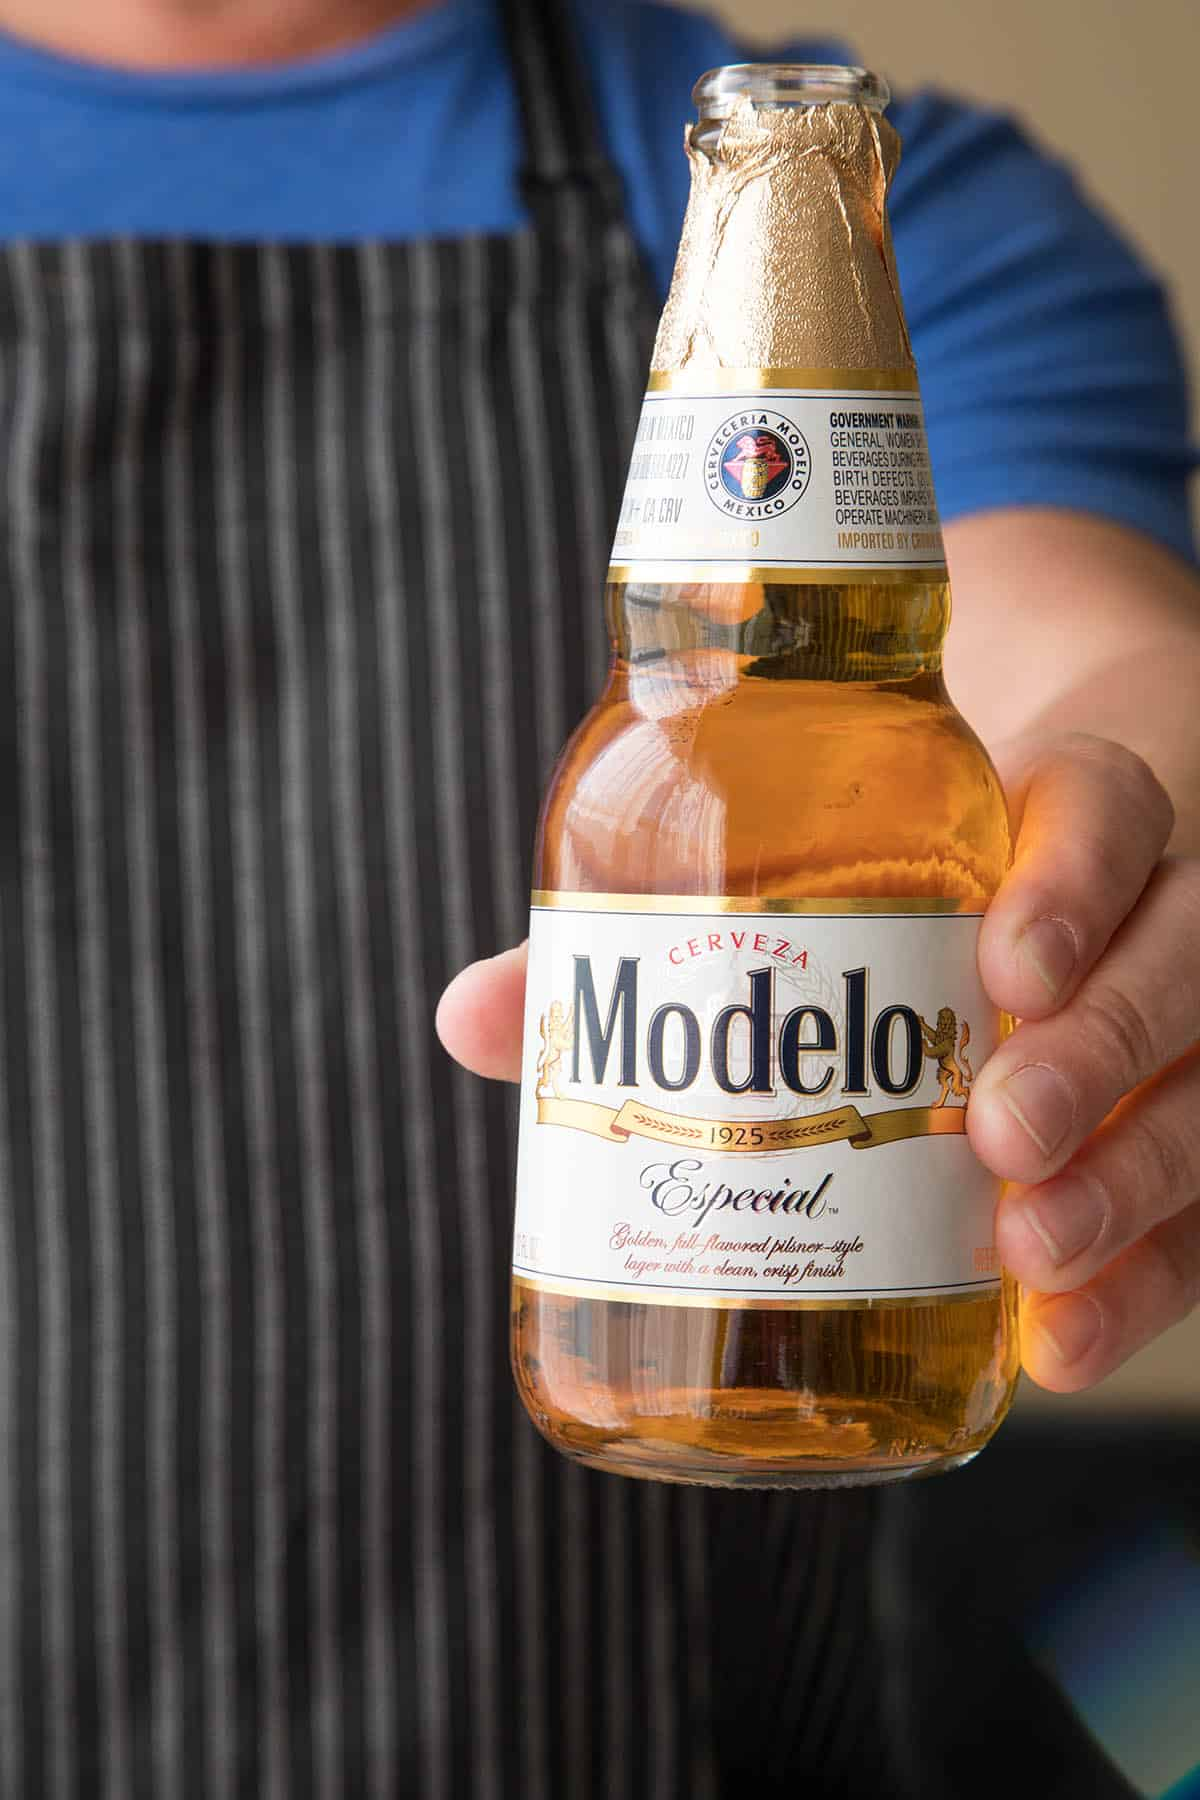 Have yourself a Modelo Especial Beer while you prepare your Mexican Gorditas